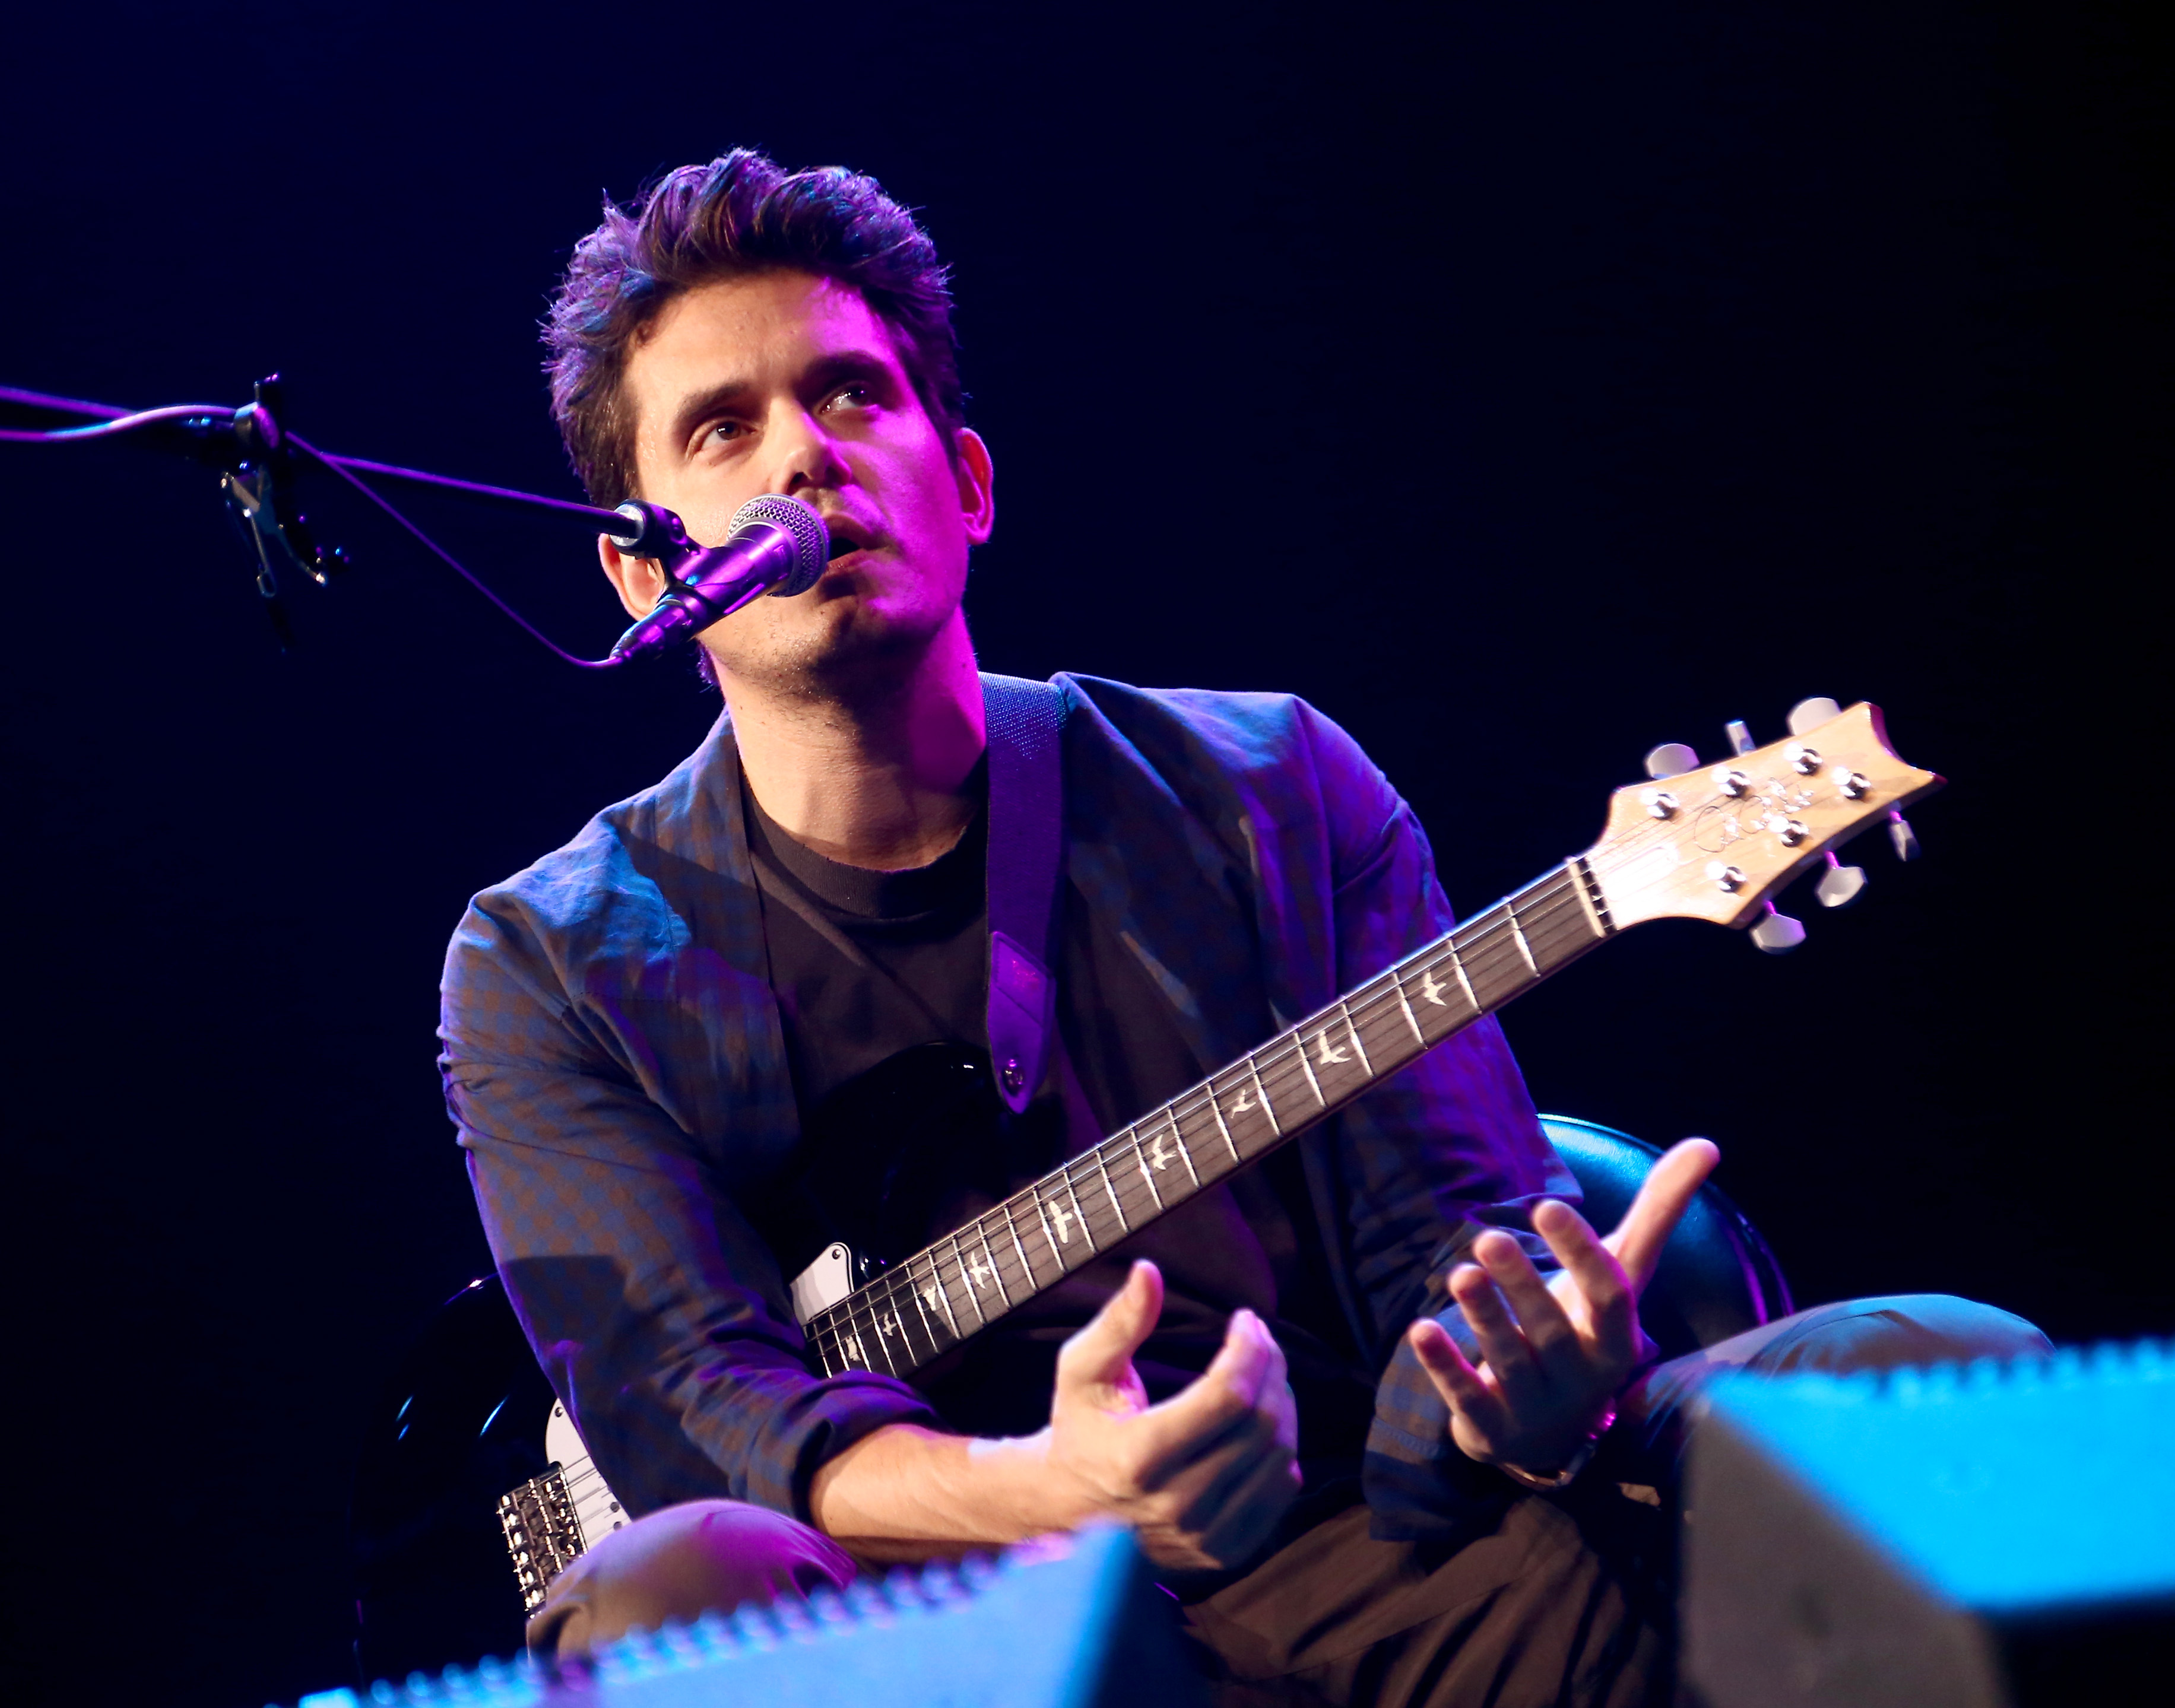 John Mayer has some thoughts about Taylor Swift's Reputation